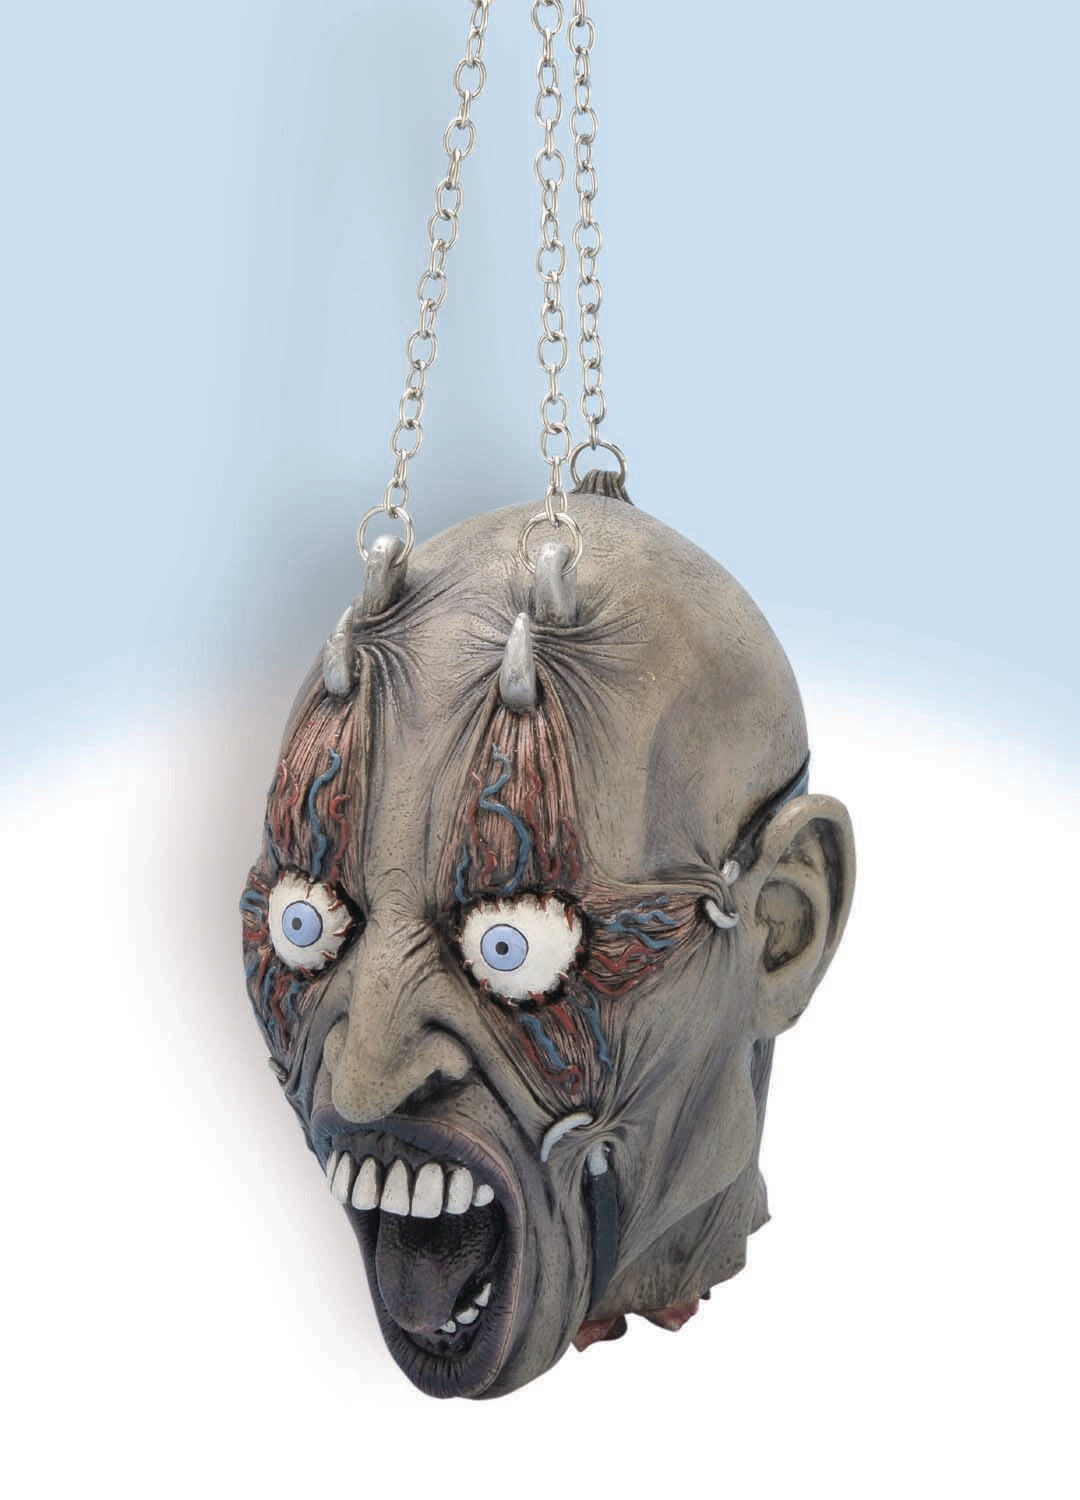 Cut Off Head In Chains